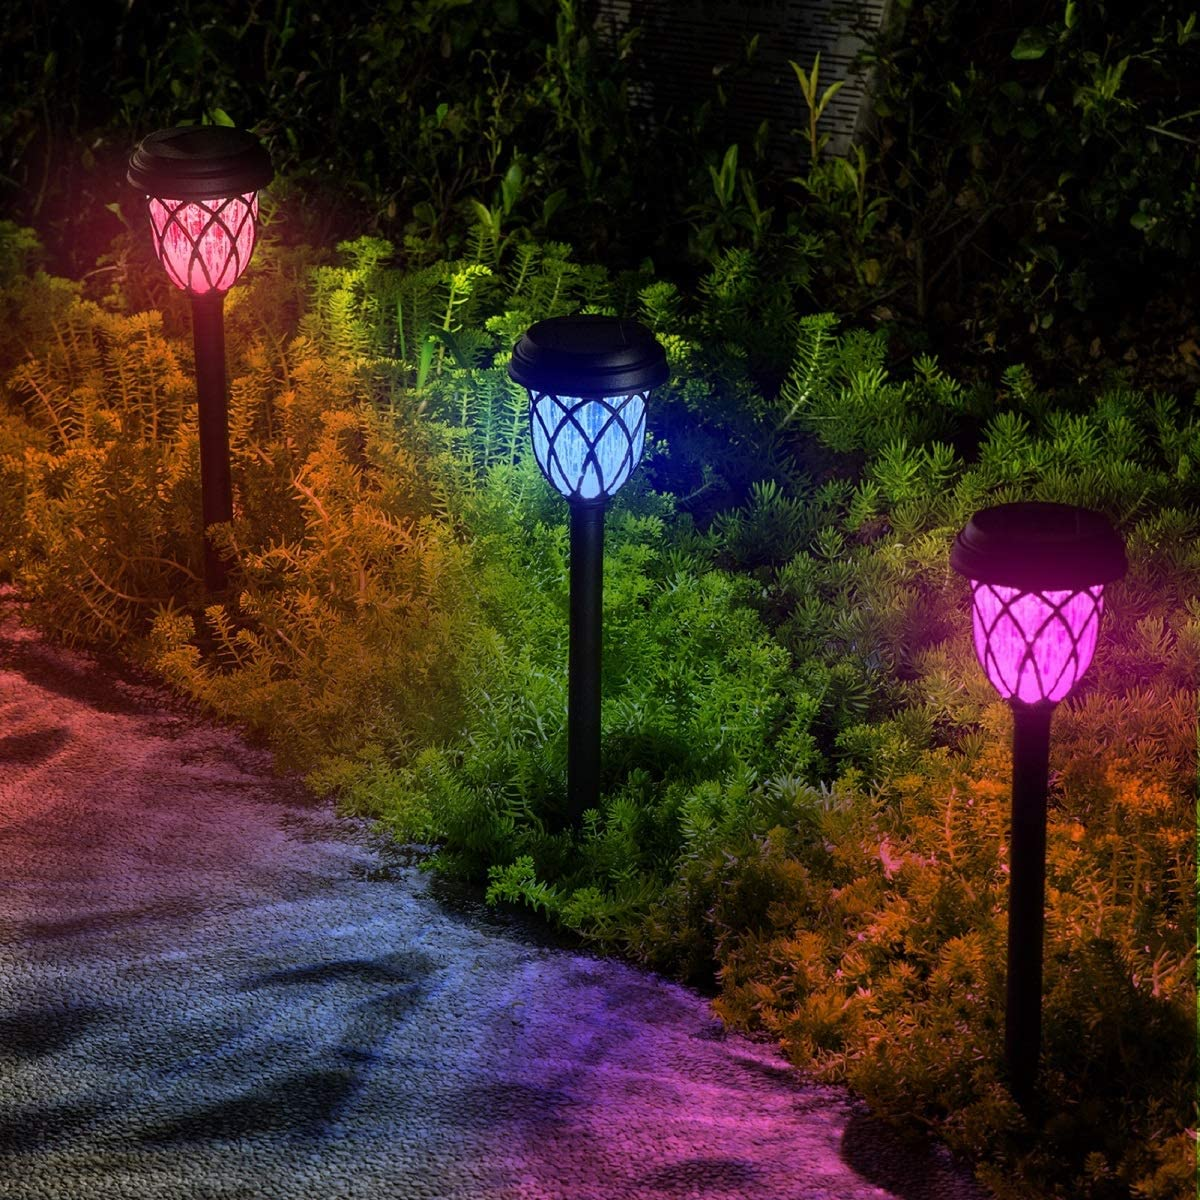 10 Pack Color Changing Solar Lights Outdoor Decorative for Garden Pathway Walkway, Solar Outdoor Decorations for Patio Garden Christmas.